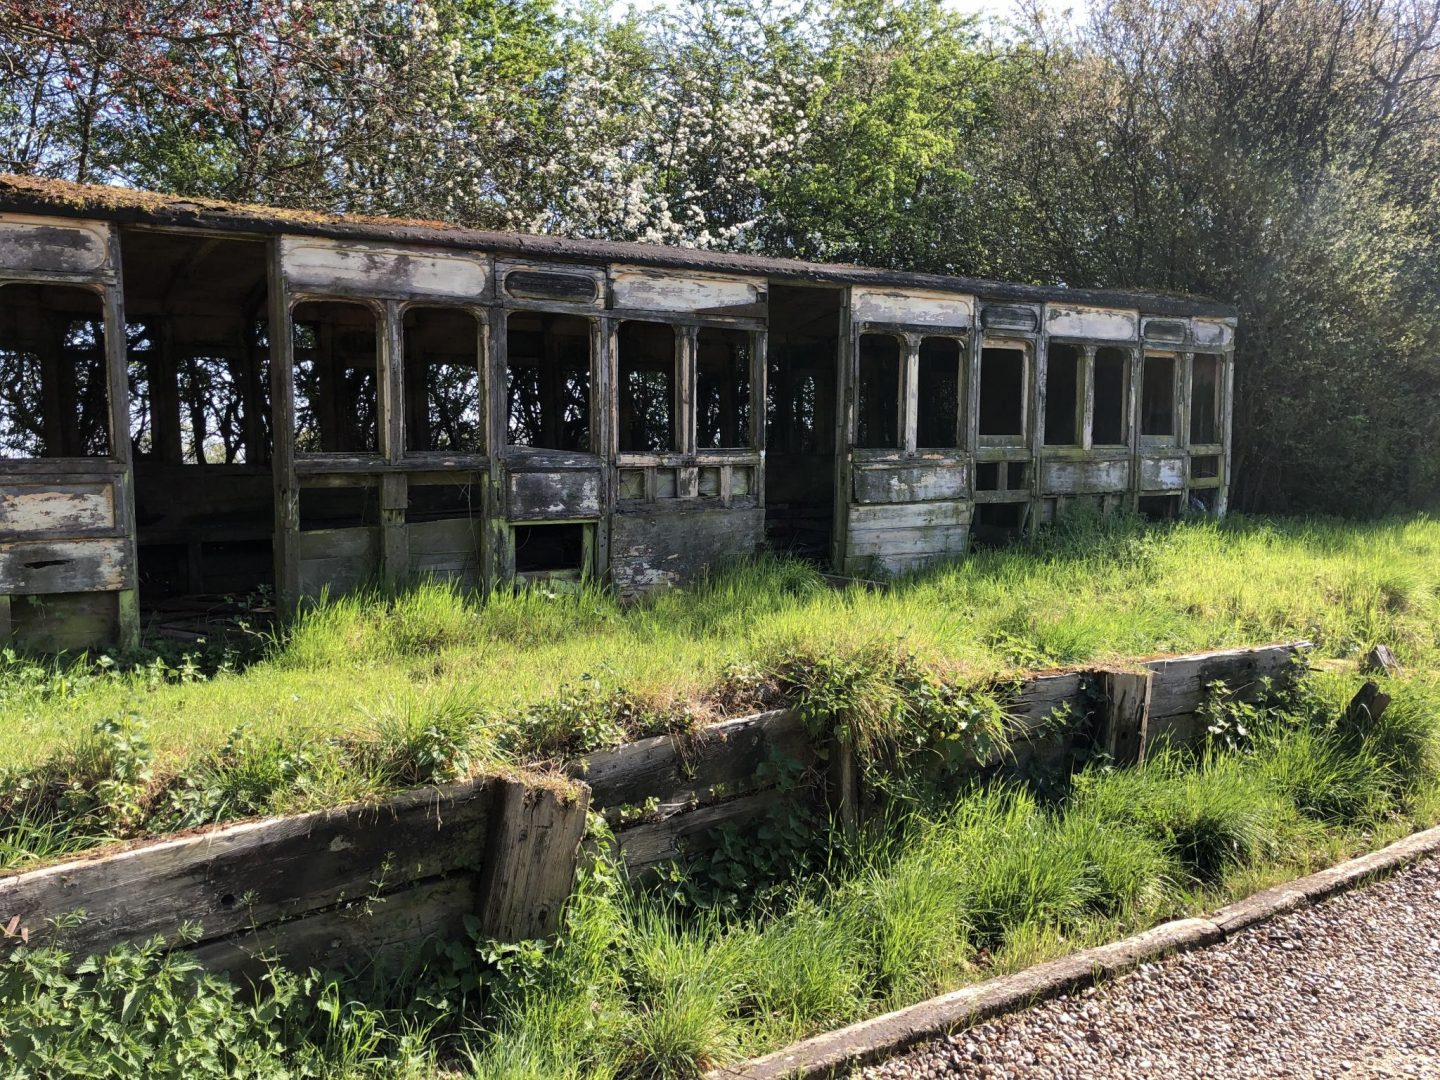 Exterior of Ashdon Halt railway carriage taken in April 2019